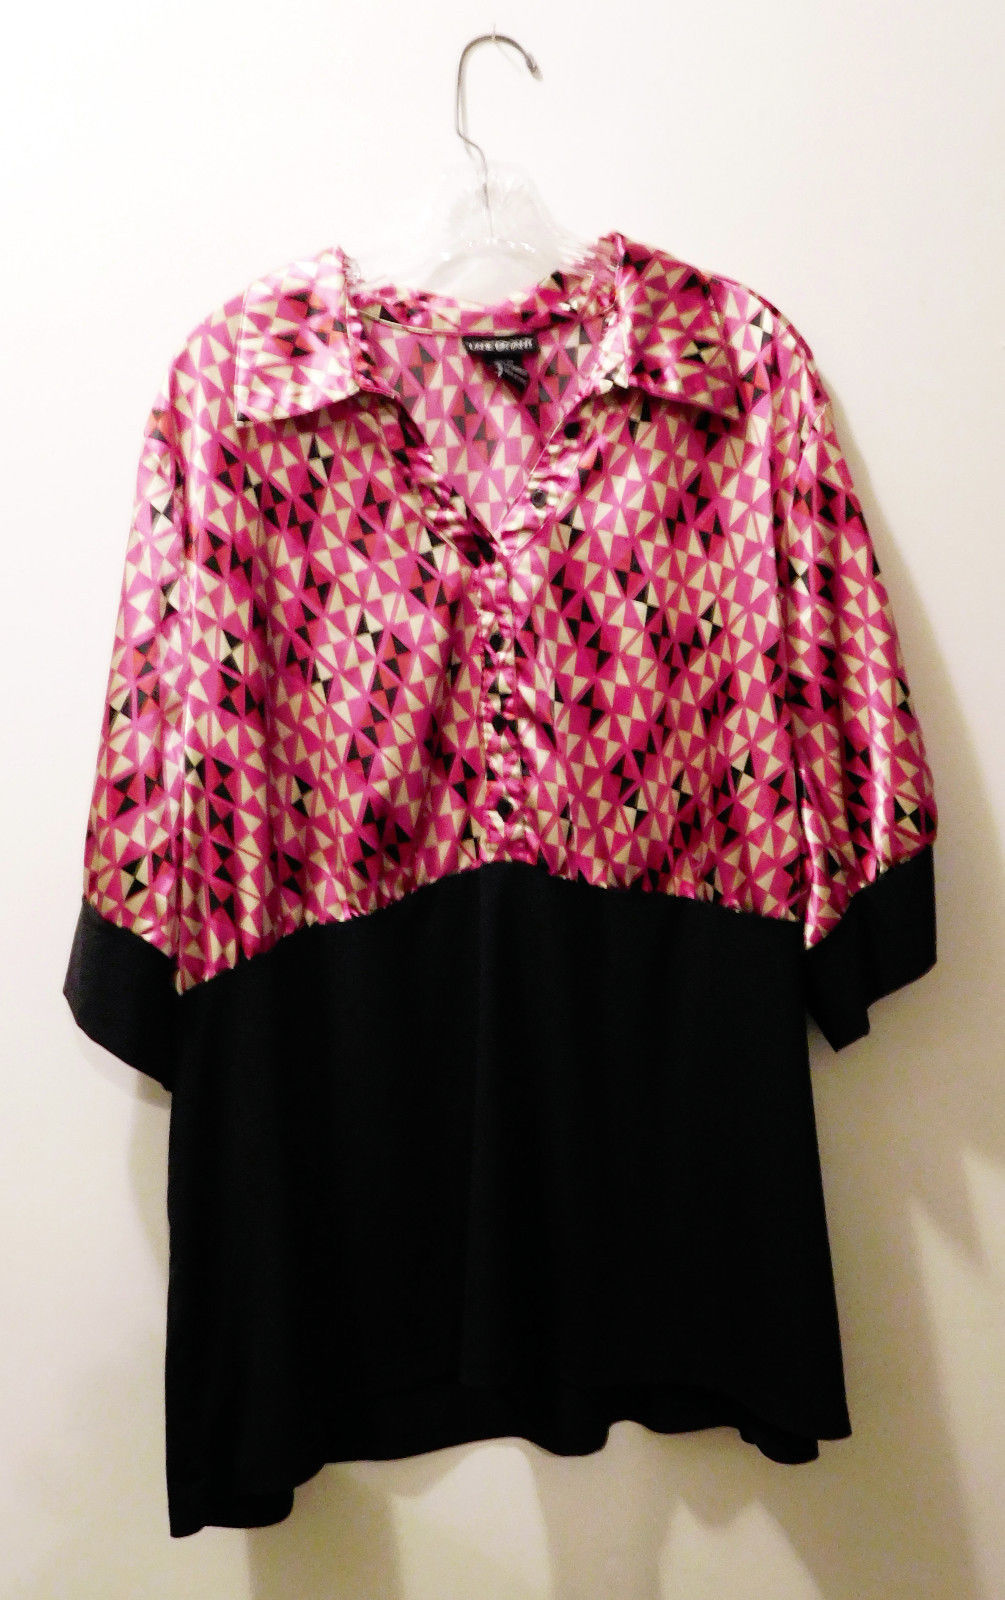 Primary image for Lane Bryant Geometric Print Combo Top 3/4 Length Sleeve Blouse -  Size 26/28